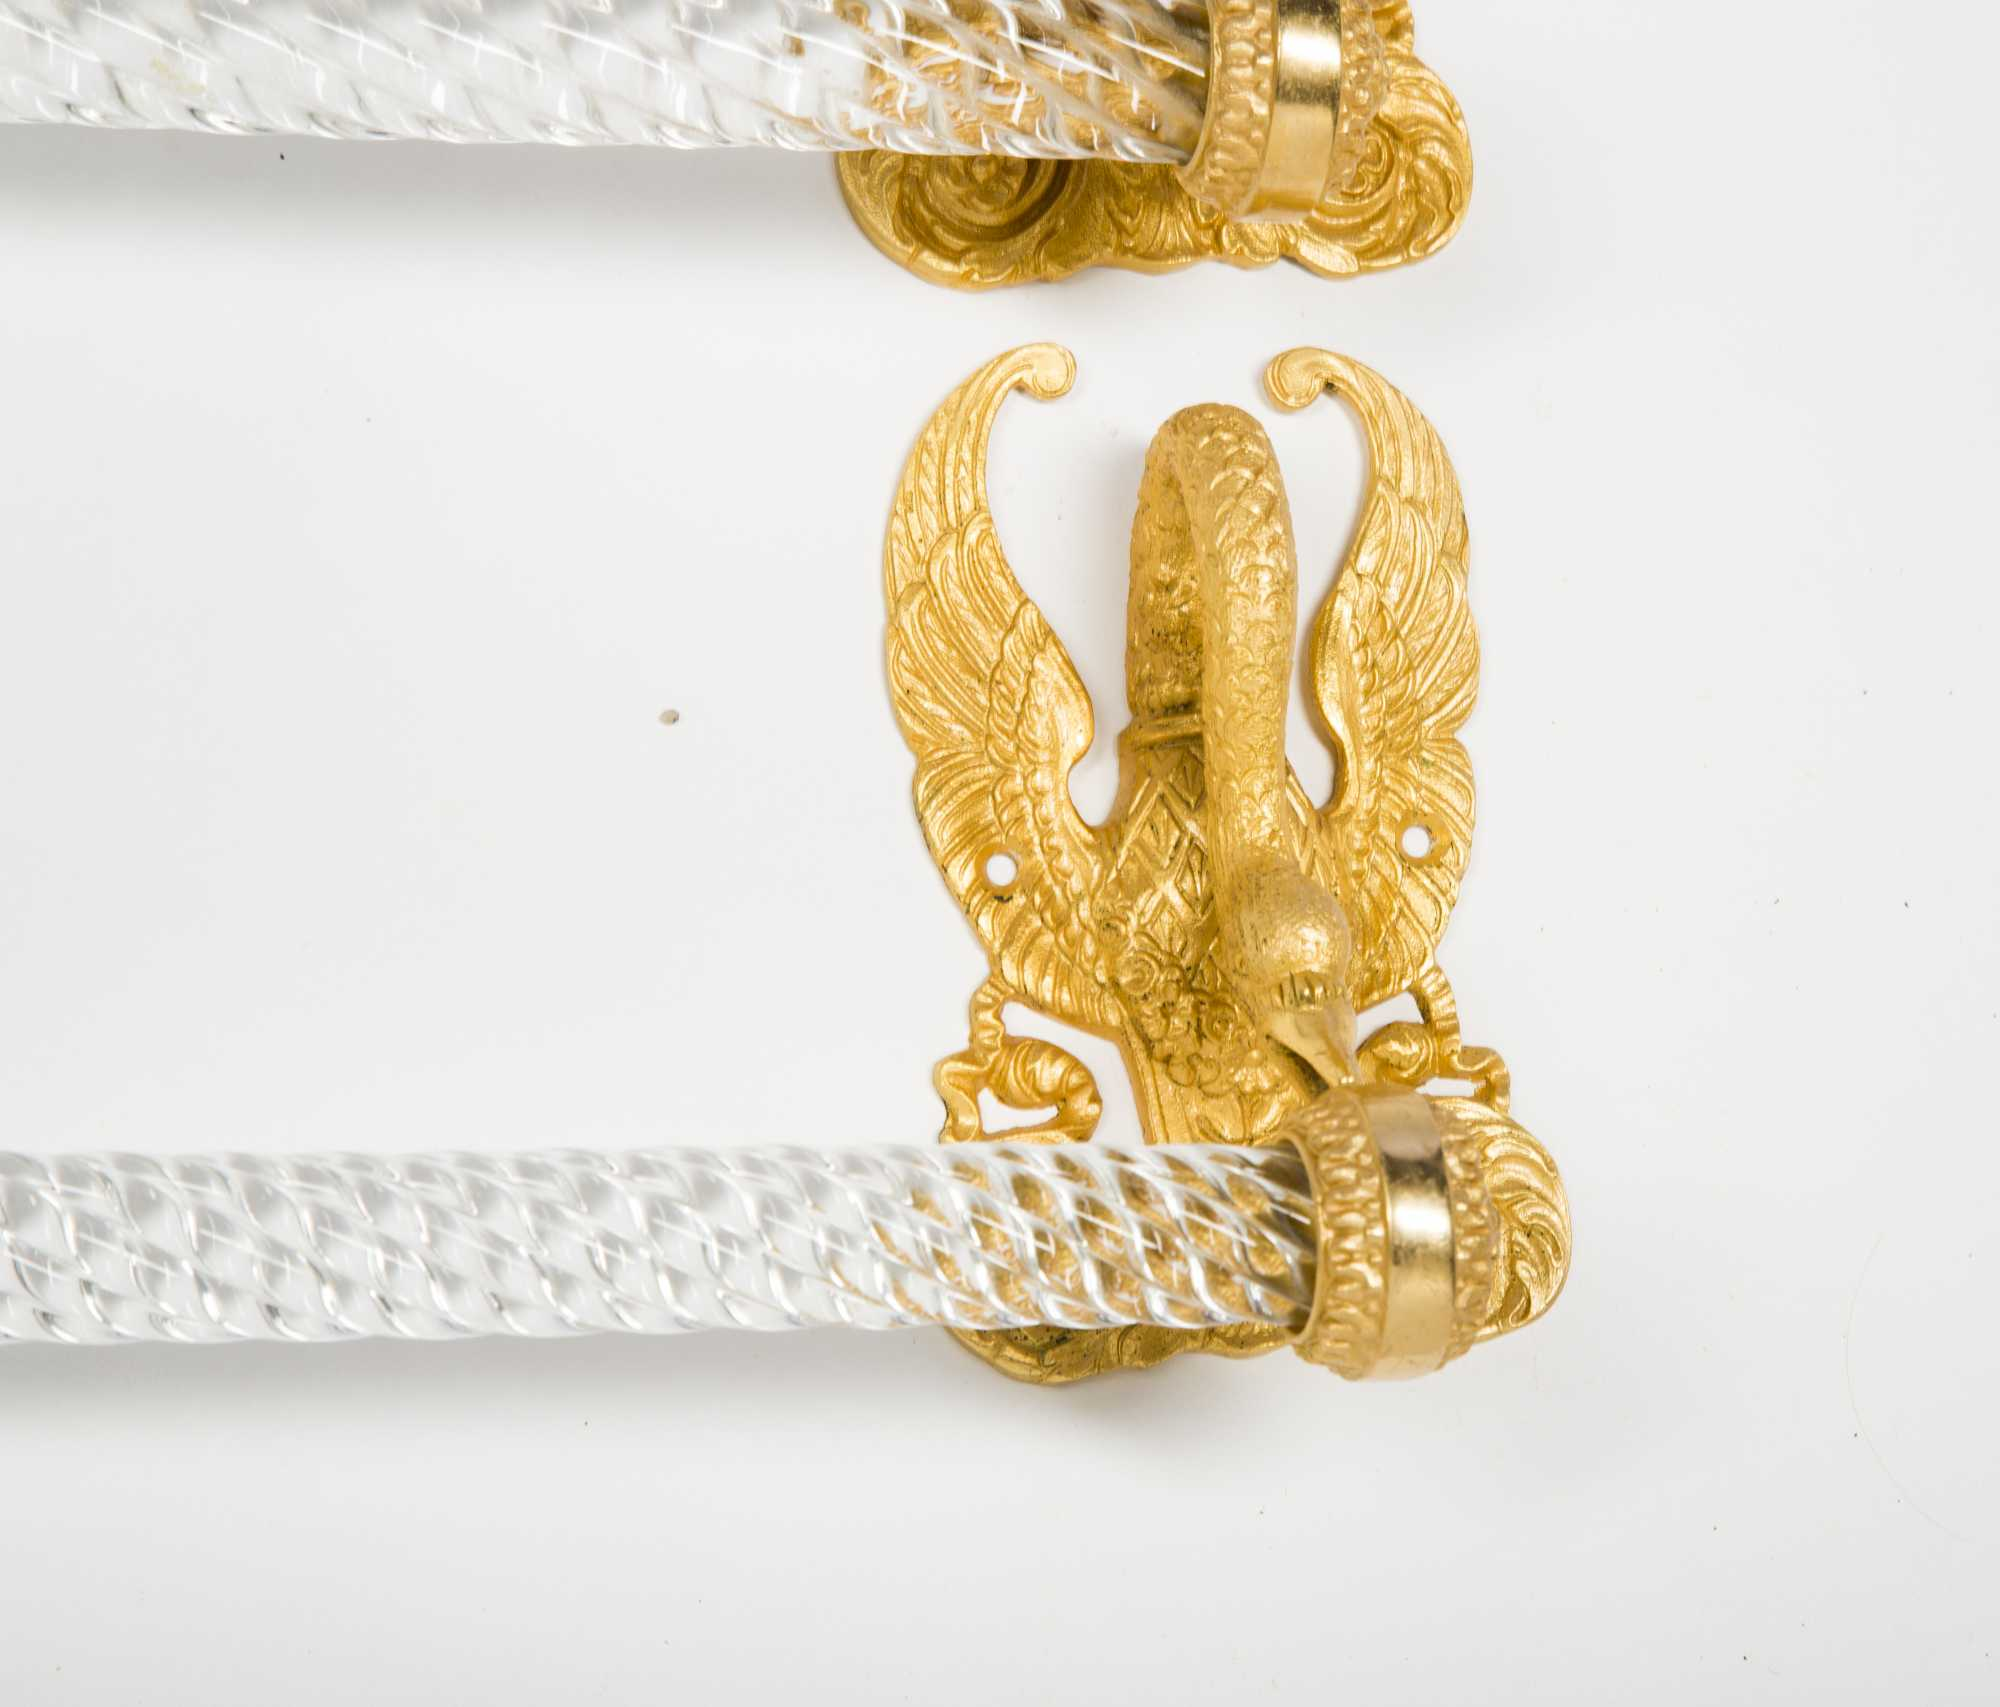 Sherle Wagner 24kt. Gold Plated Swan Bathroom Fixtures